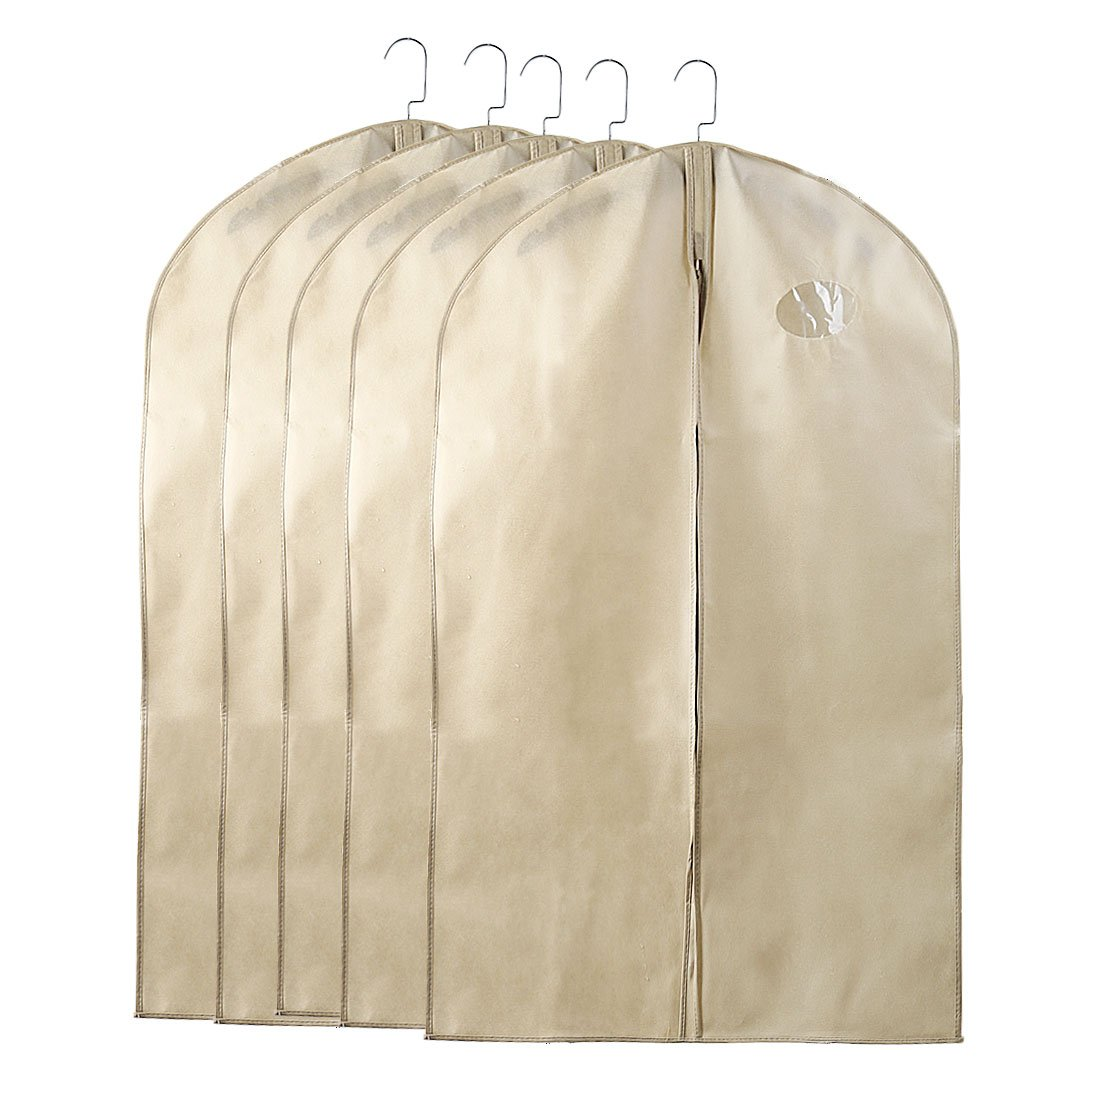 uxcell Pack of 5 Full Zipper Suit Bags, 40-Inch Breathable Garment Bags for Storage or Travel,Khaki Foldable Storage bags With Clear Window & Metal Eyehole for Luggage, Dresses, Linens